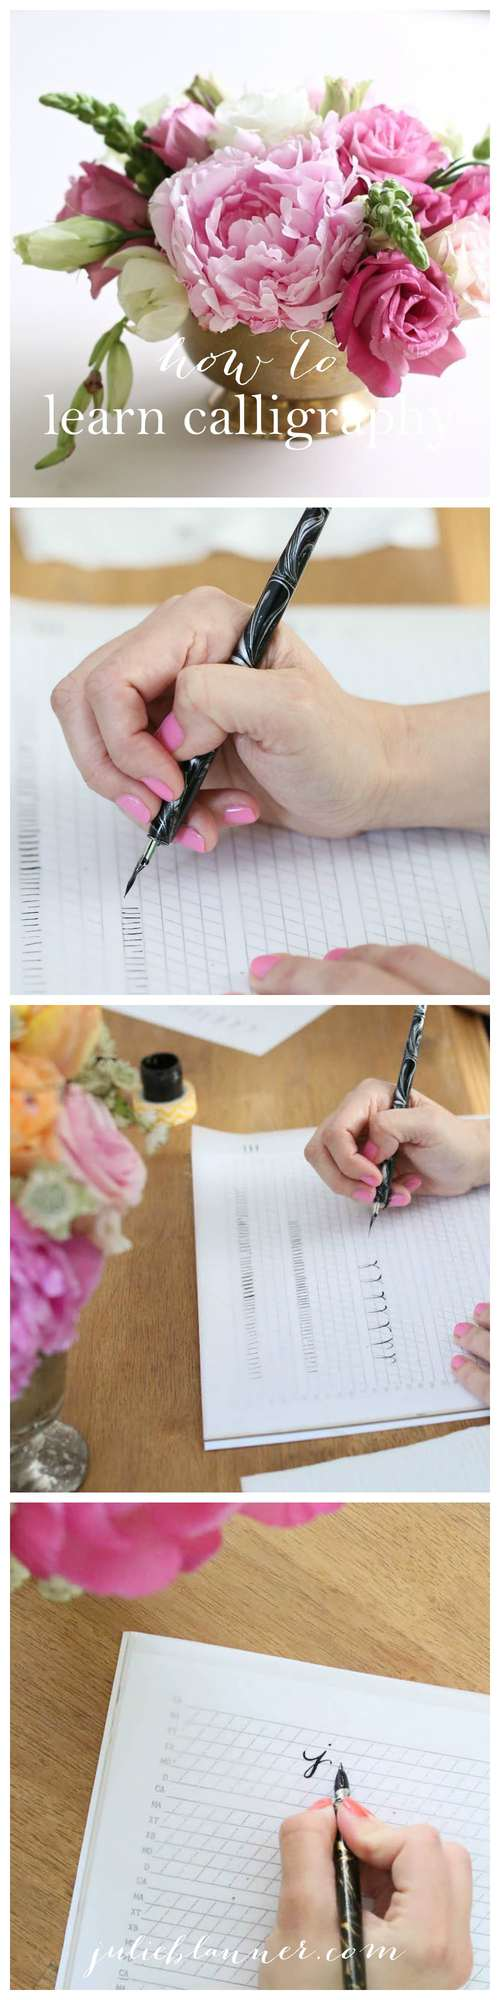 Learn calligraphy from the comfort of your home with this step-by-step tutorial at julieblanner.com